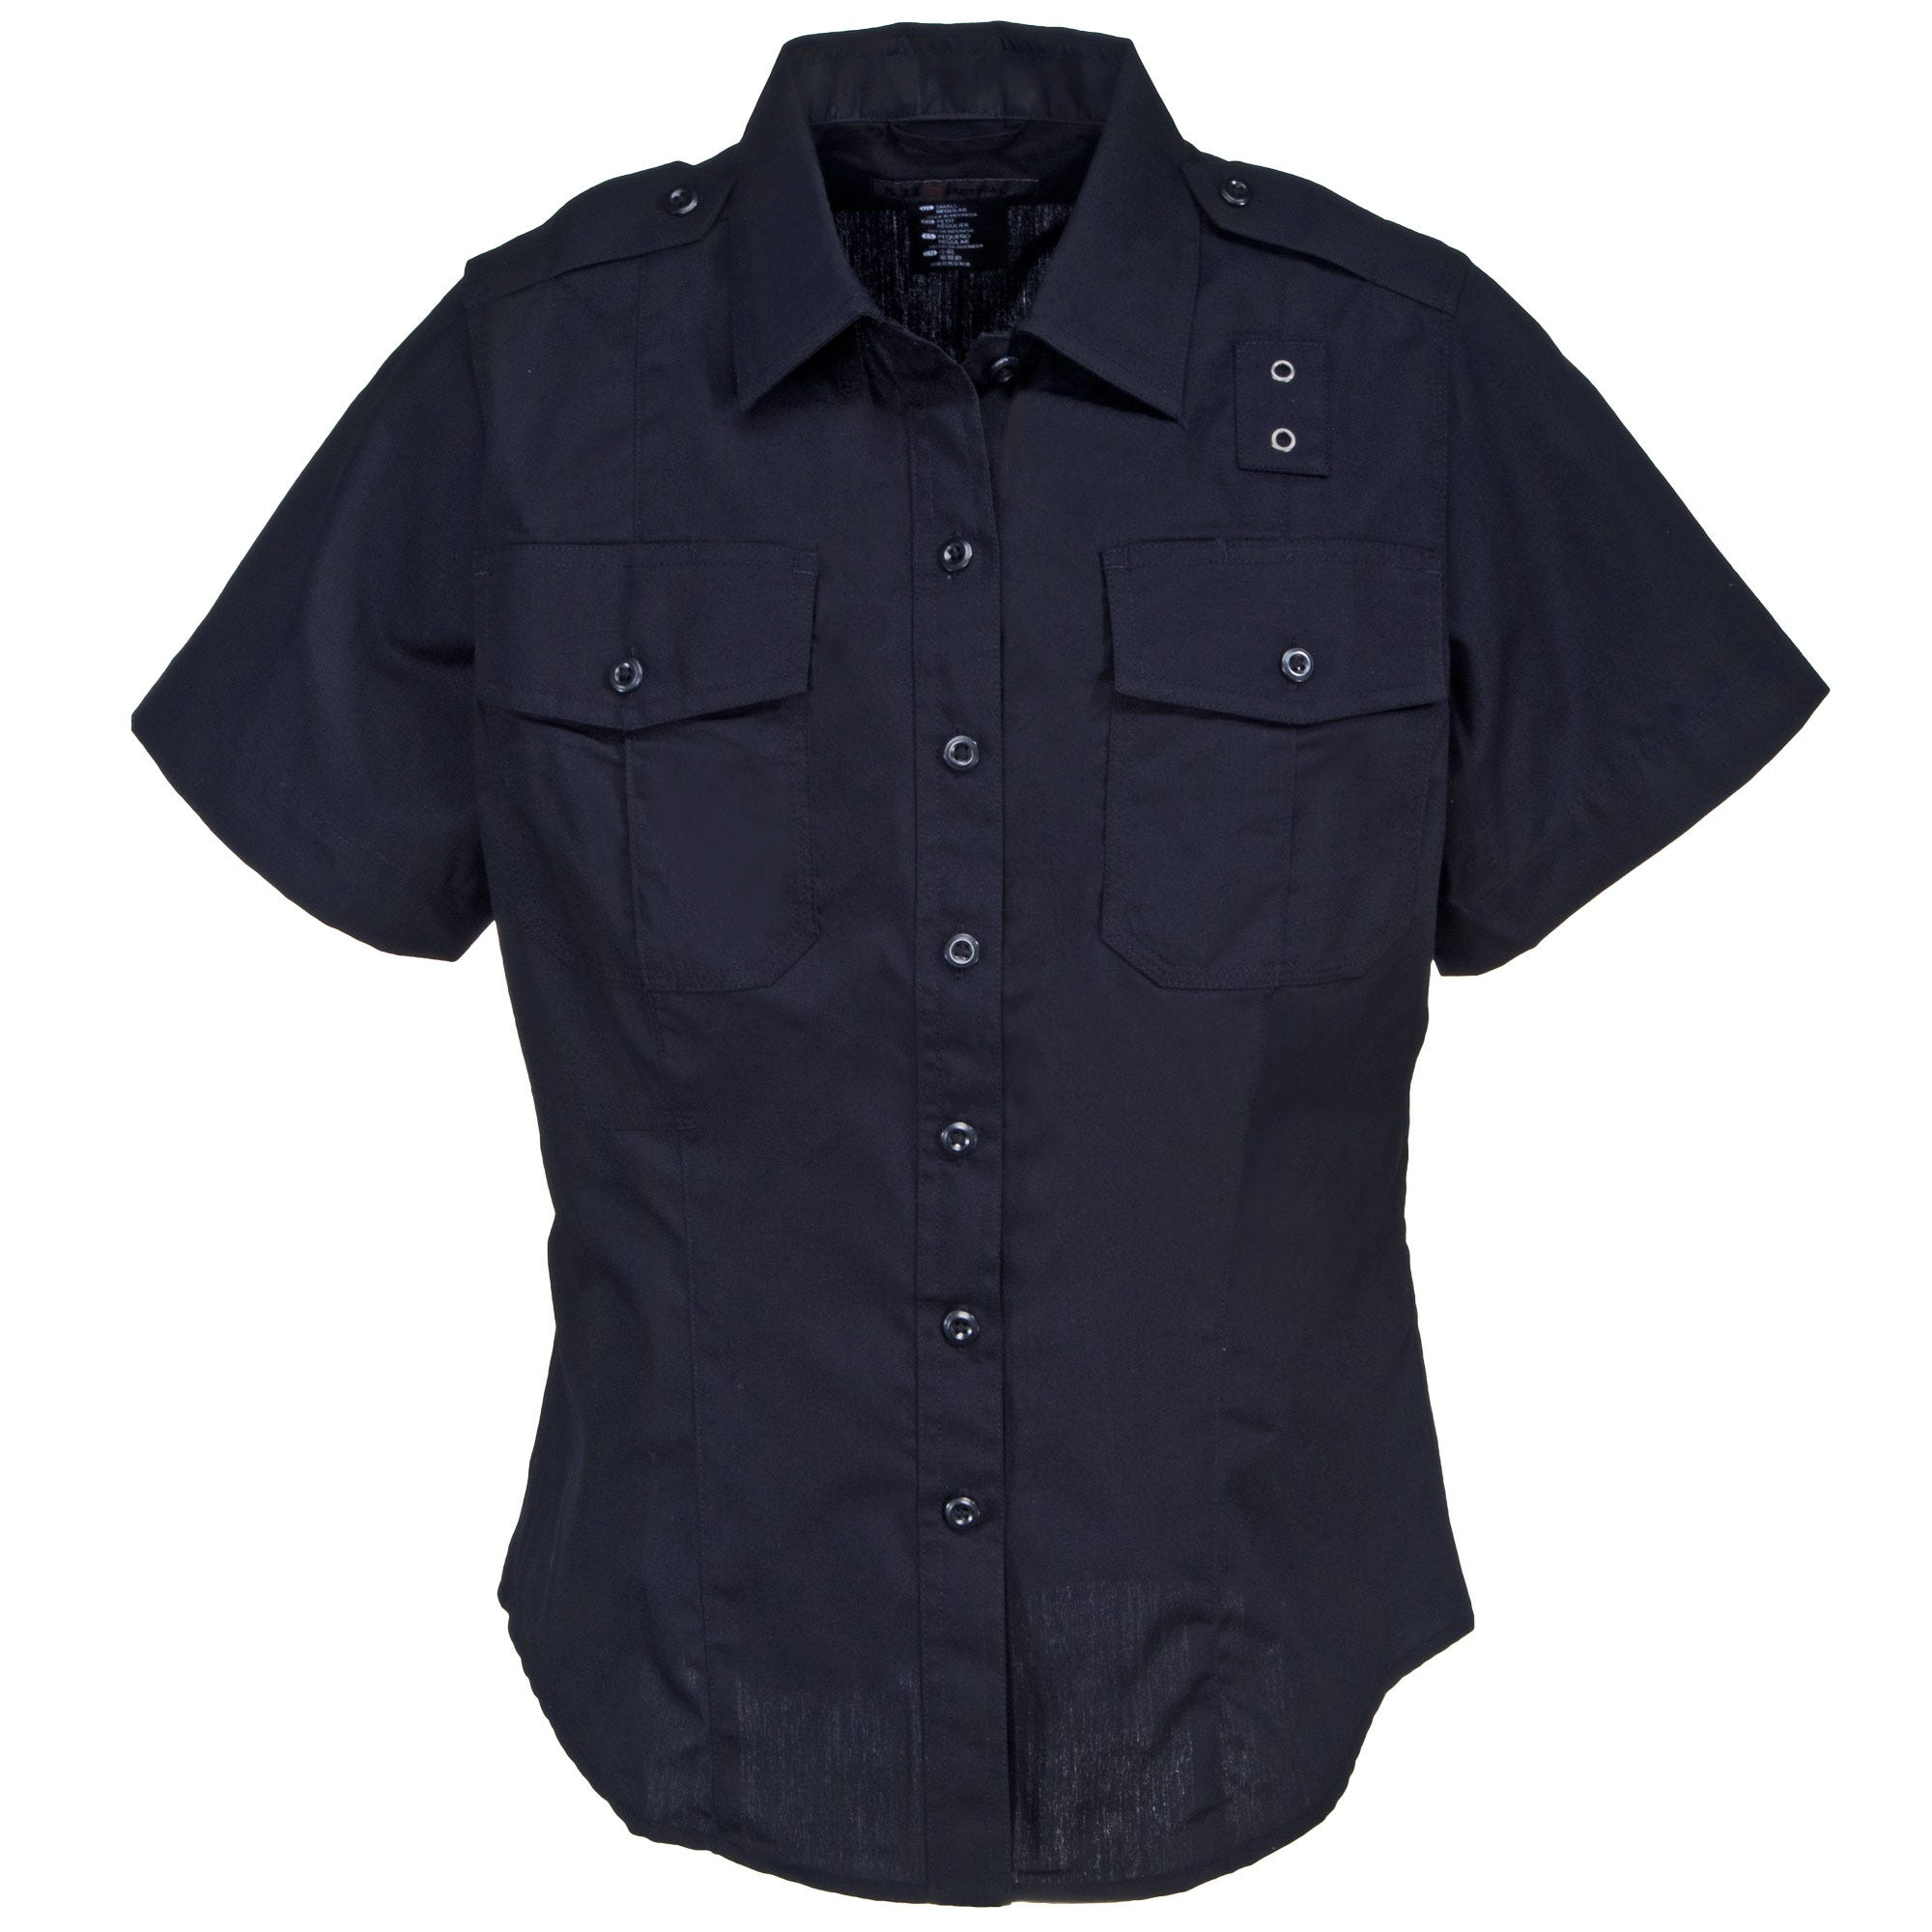 5.11 Tactical Women's 61167 750 Navy Ripstop Short Sleeve Shirt